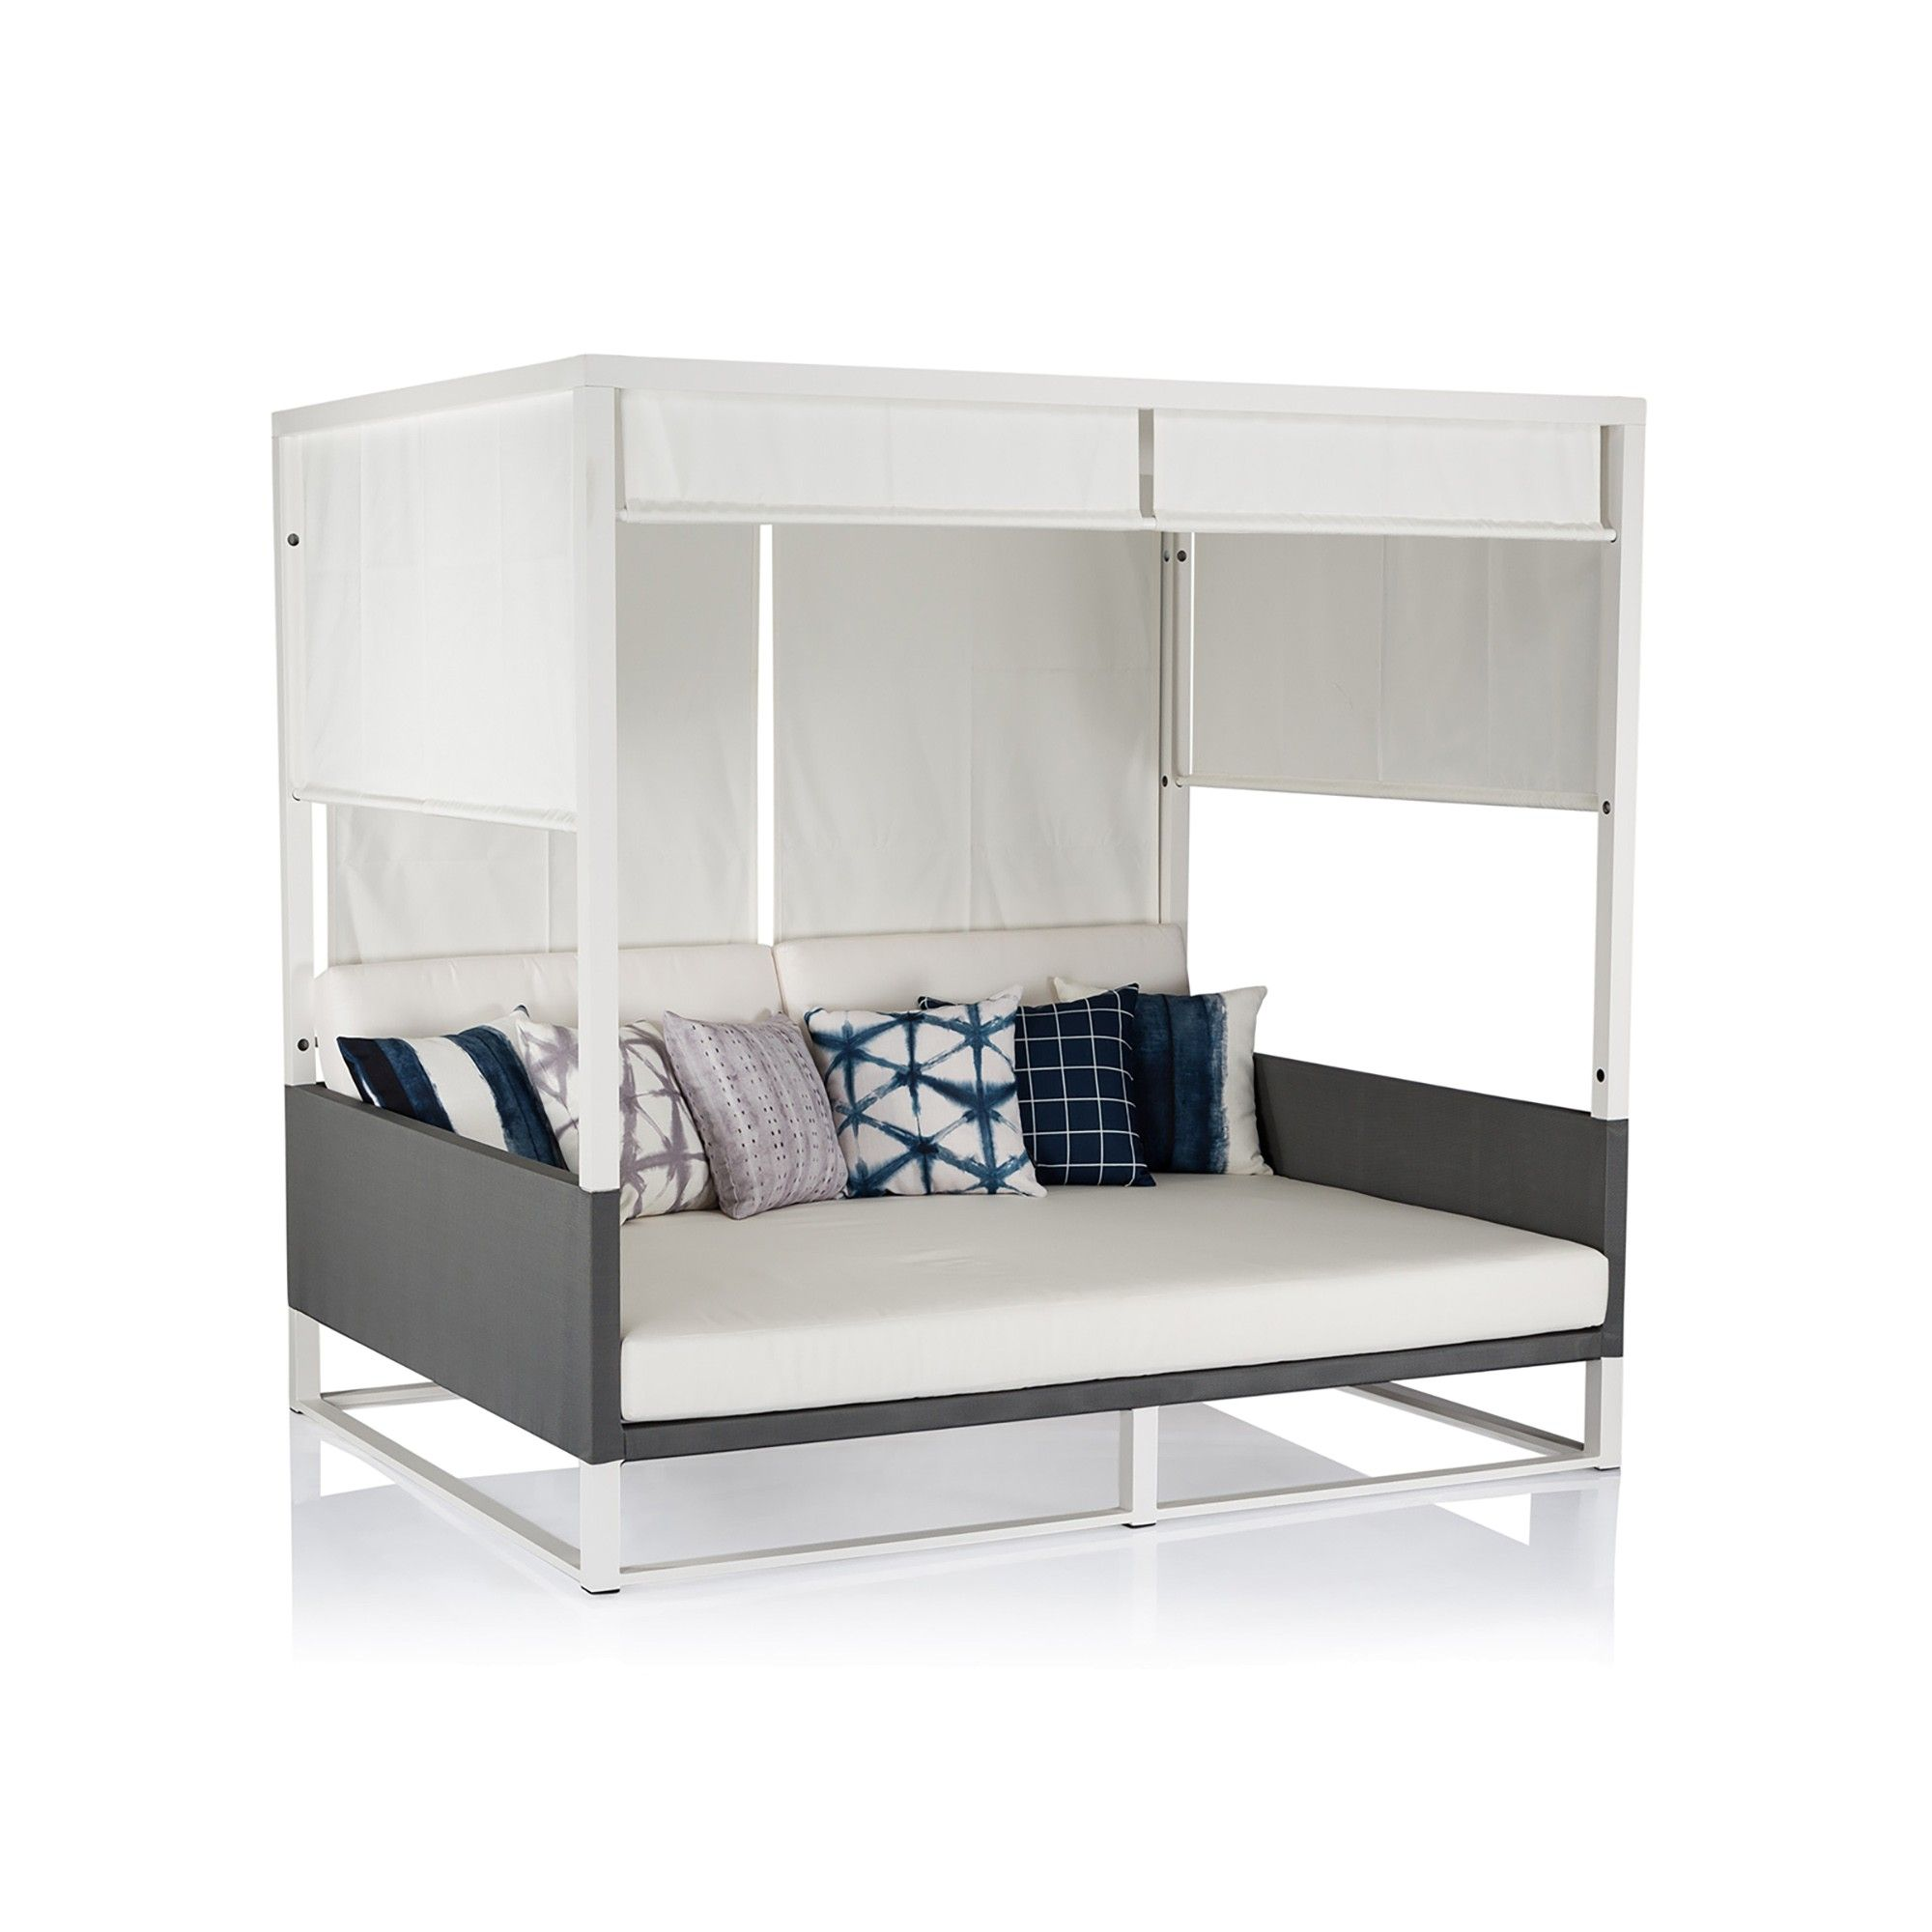 Maldive Outdoor Canopy Daybed | Daybed canopy, Canopy ... on Living Spaces Outdoor Daybed id=53242